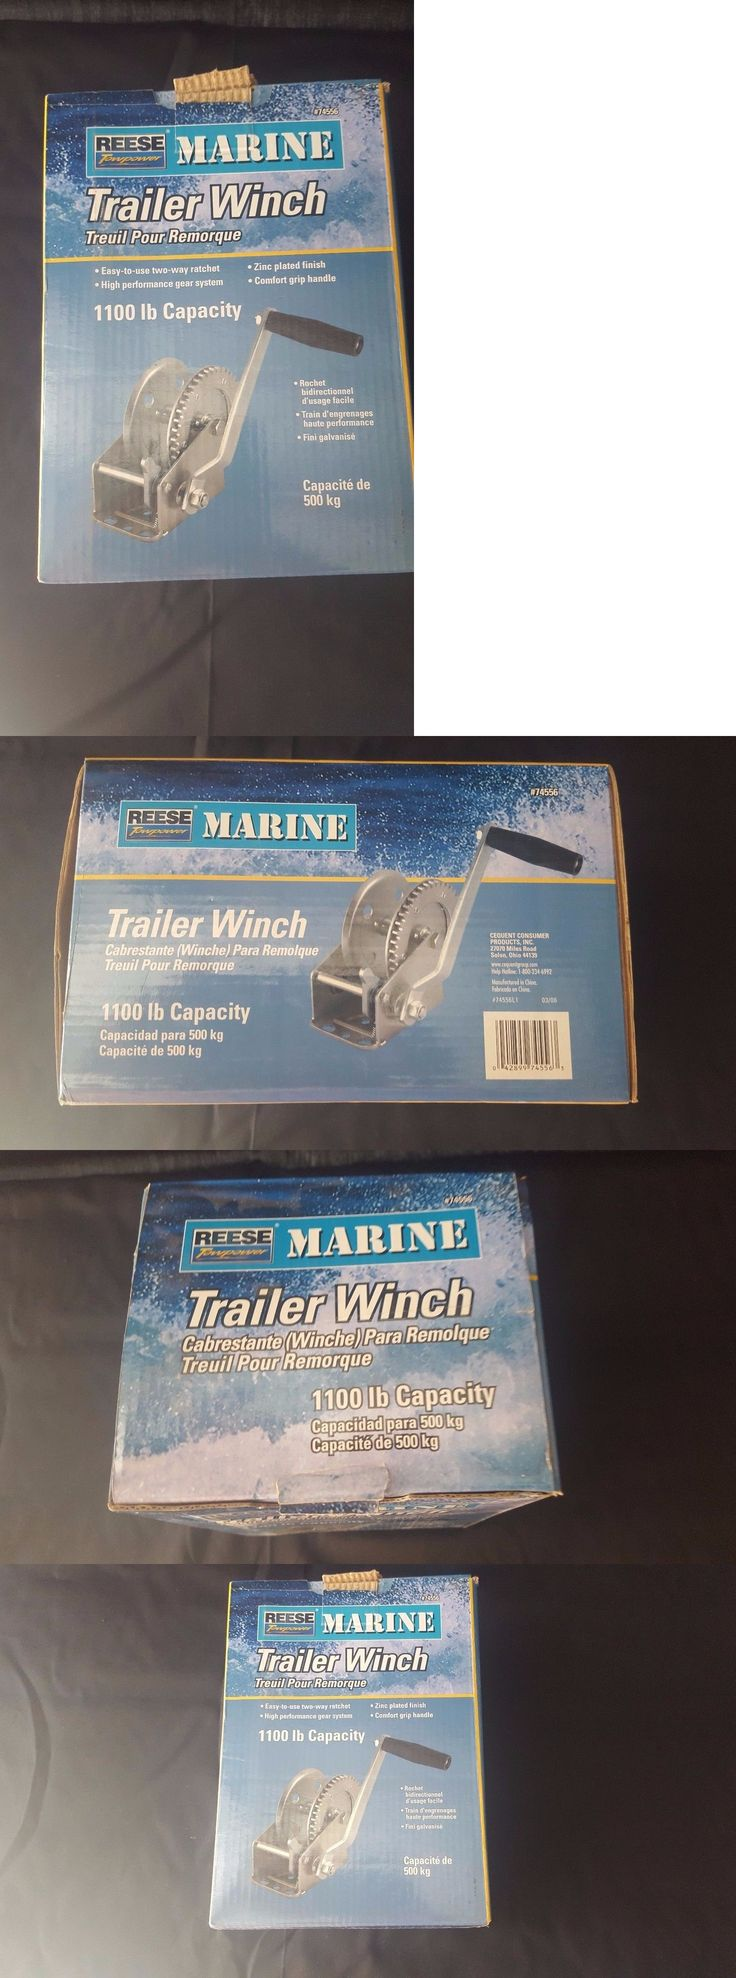 Winches 66796: Reese Towpower 74556 1100 Pounds Hitch Winch Without Strap -> BUY IT NOW ONLY: $34.89 on eBay!